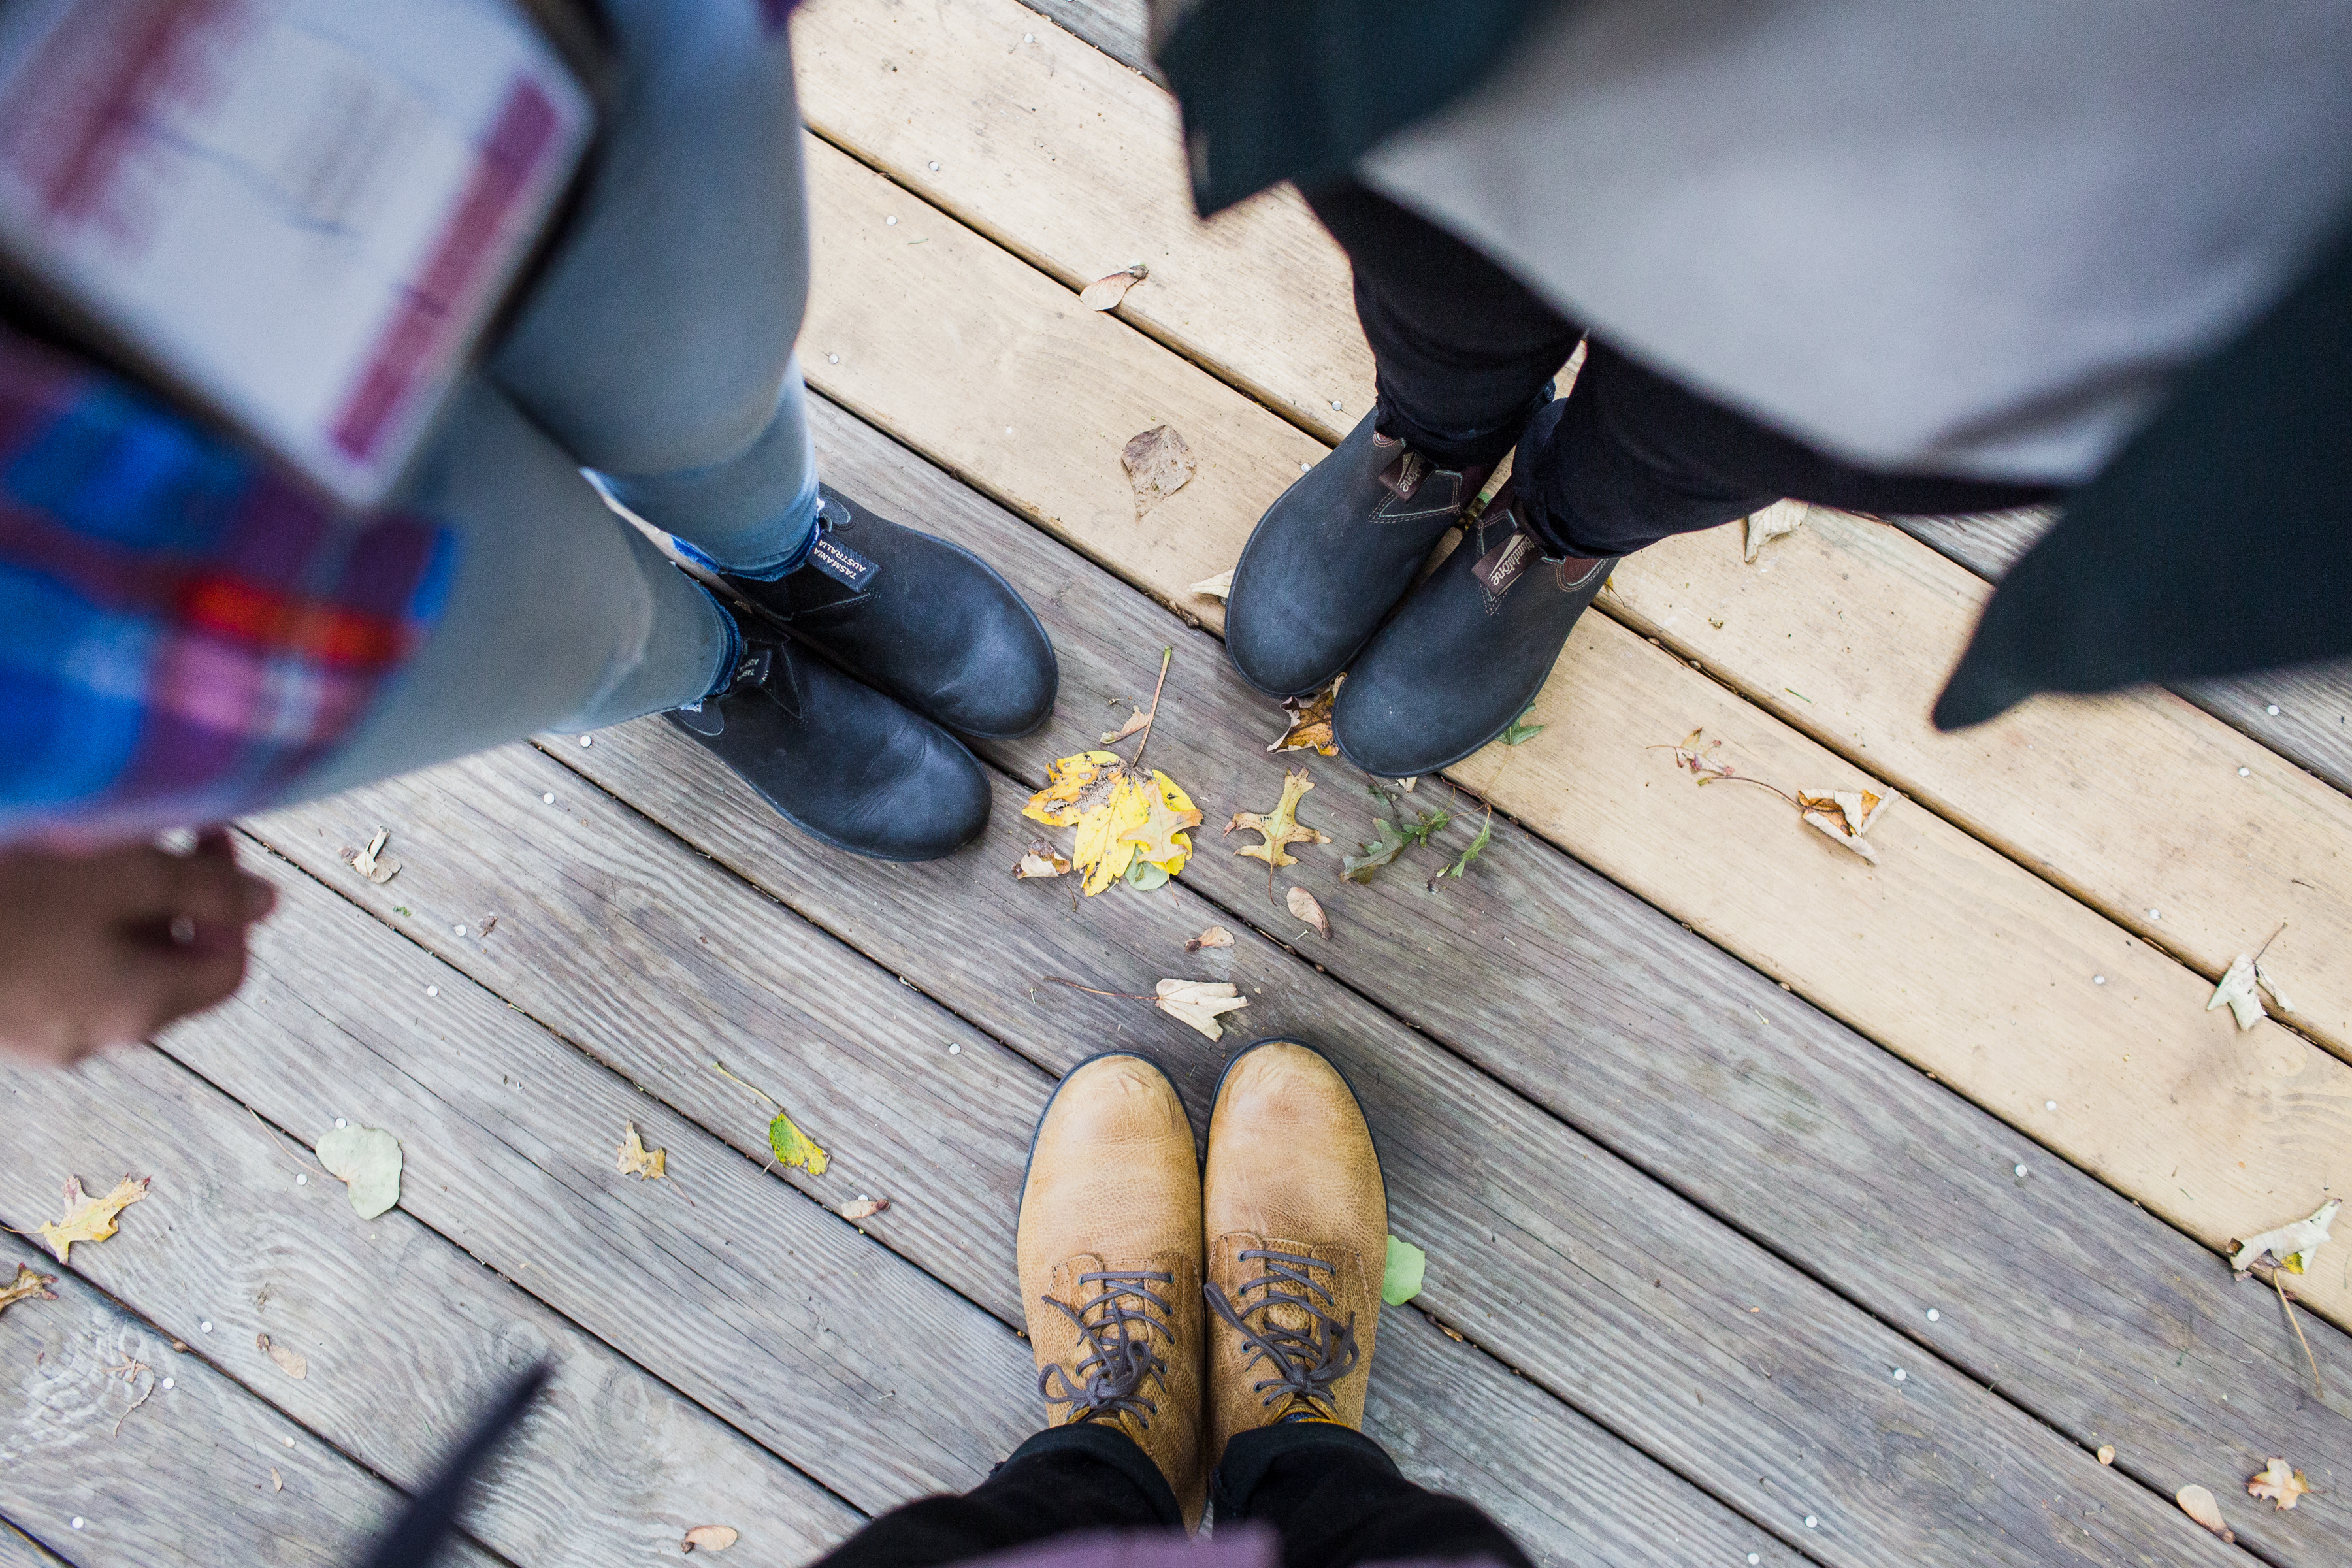 Three people looking down at their boots